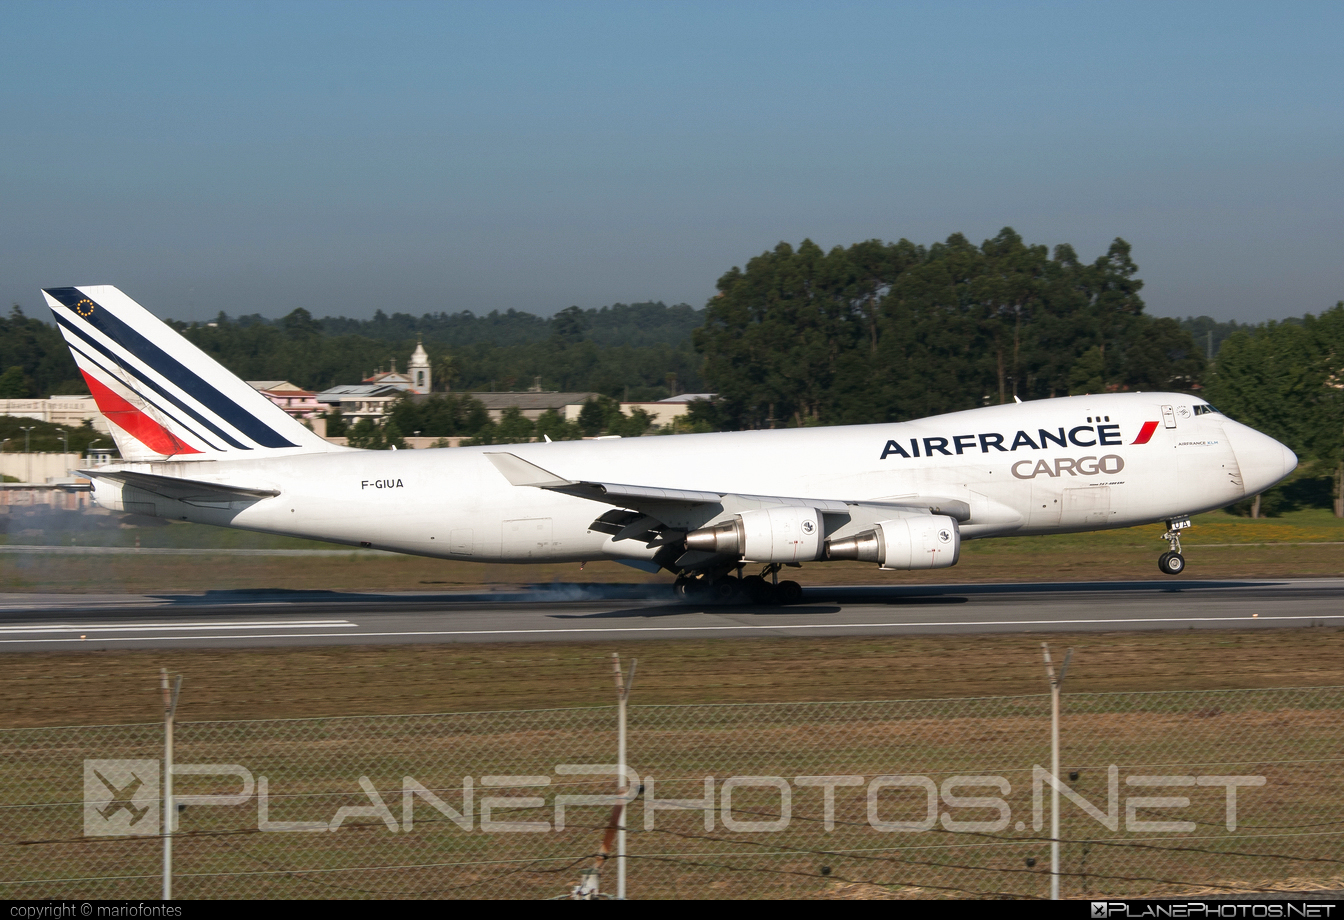 Boeing 747-400ERF - F-GIUA operated by Air France Cargo #b747 #b747erf #b747freighter #boeing #boeing747 #jumbo